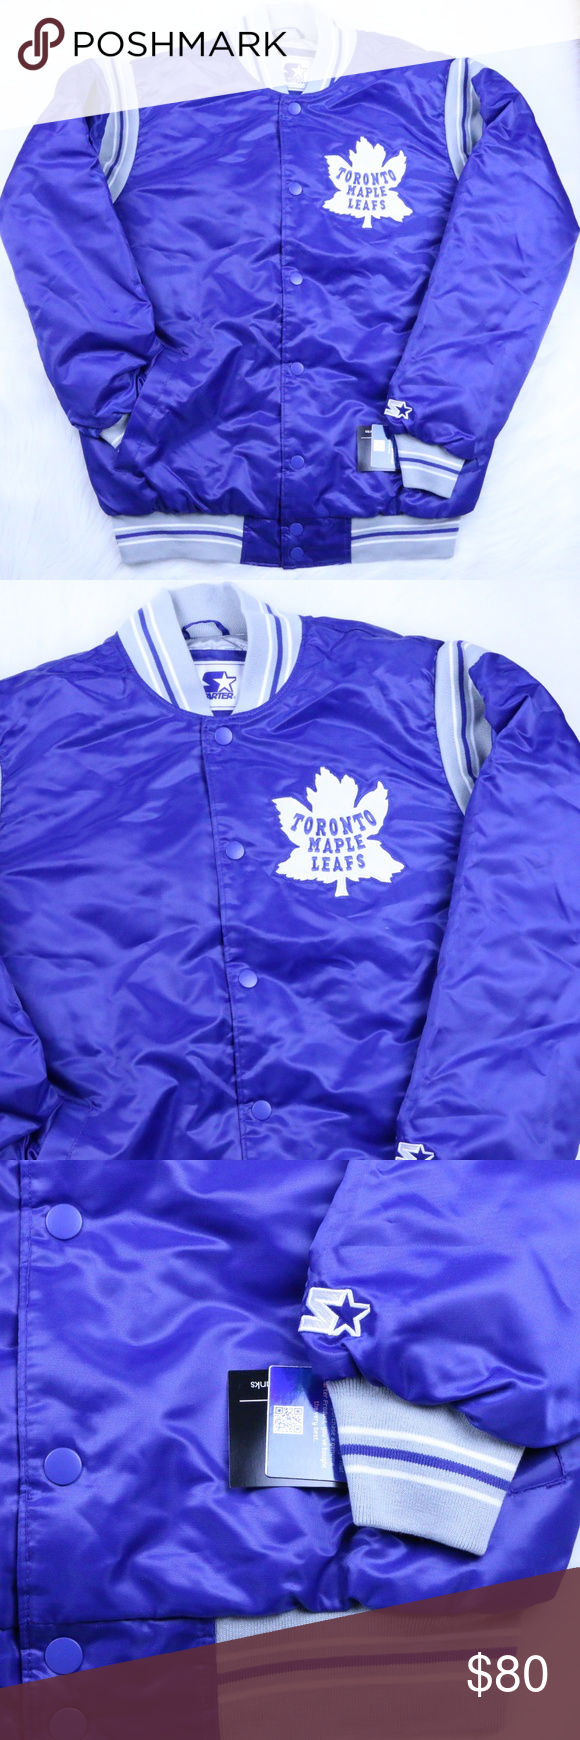 Toronto Maple Leafs Starter Jacket L Toronto Maple Leafs Starter Retro Satin Winter Jacket Blue Men S L Nhl Nwt Leather Jacket Men Winter Jacket Men Jackets